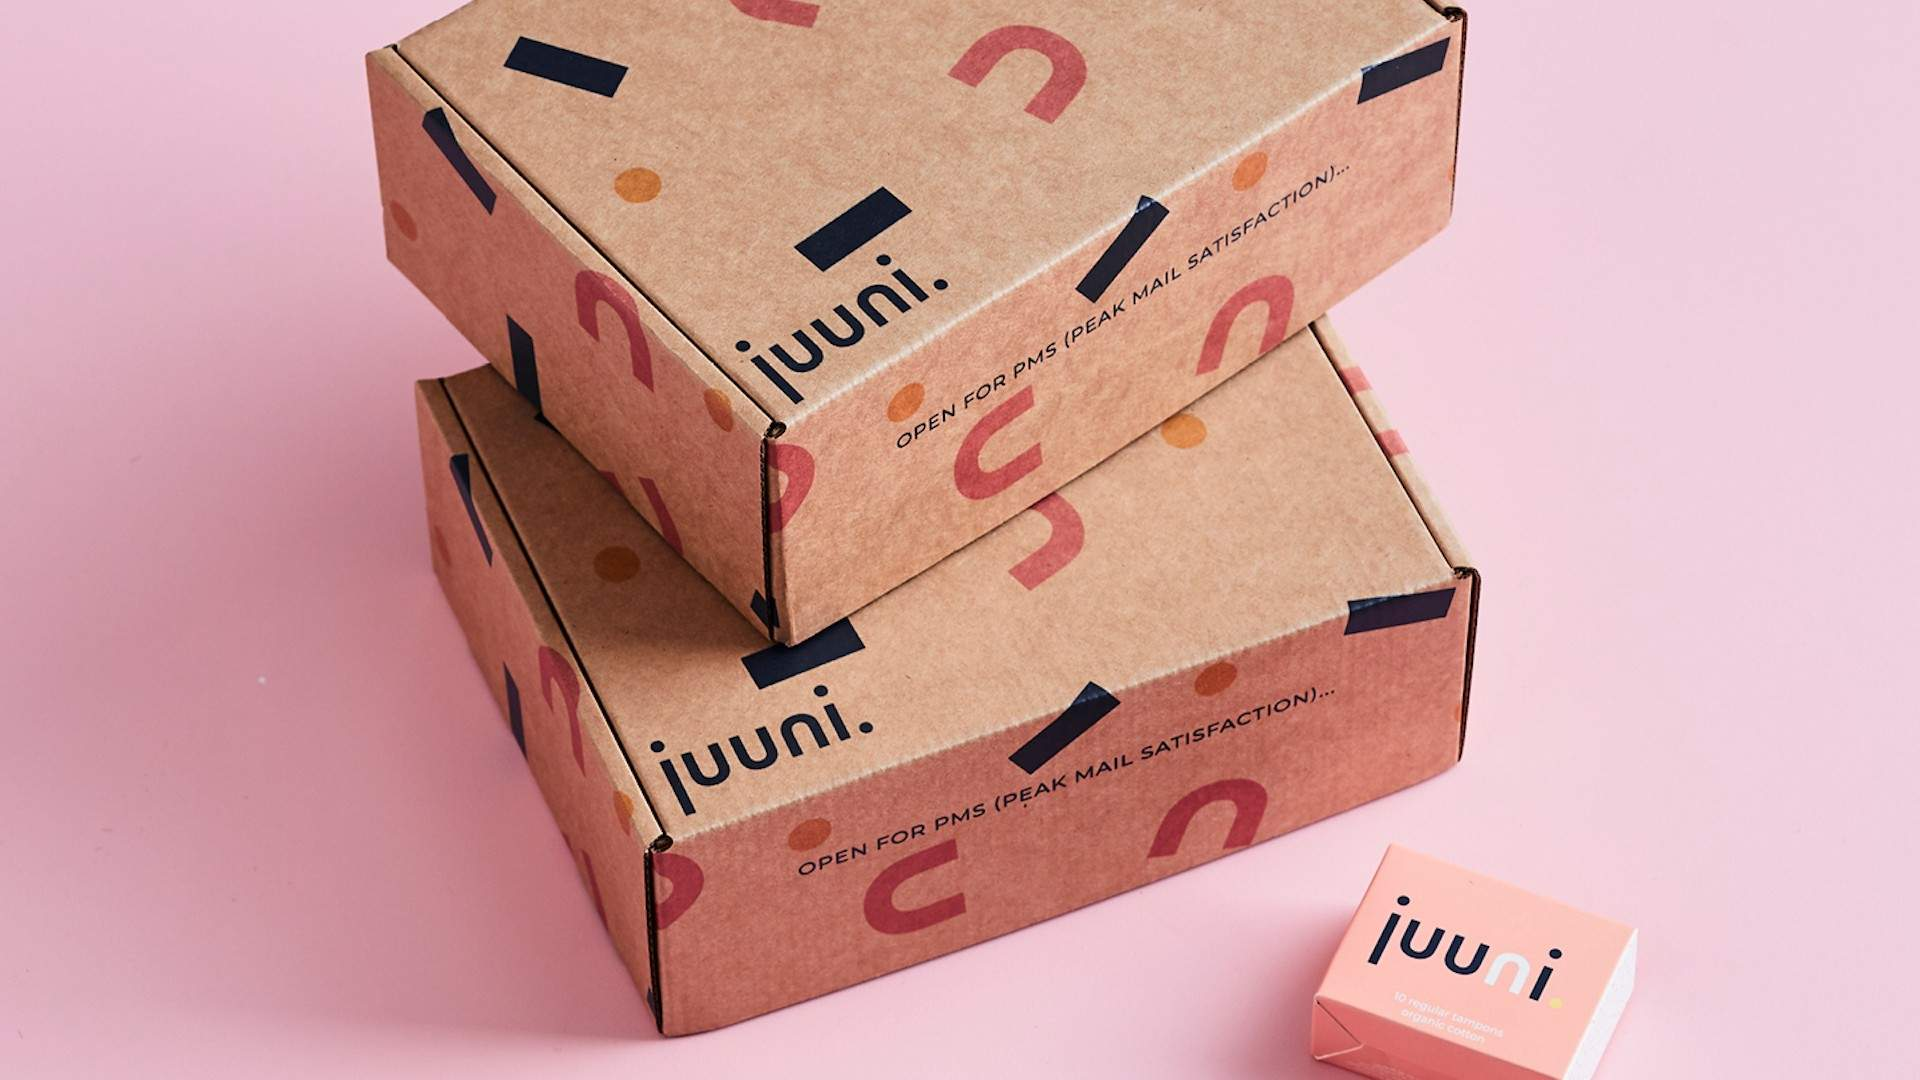 Juuni Is Australia's New Subscription Service for Organic Period Products